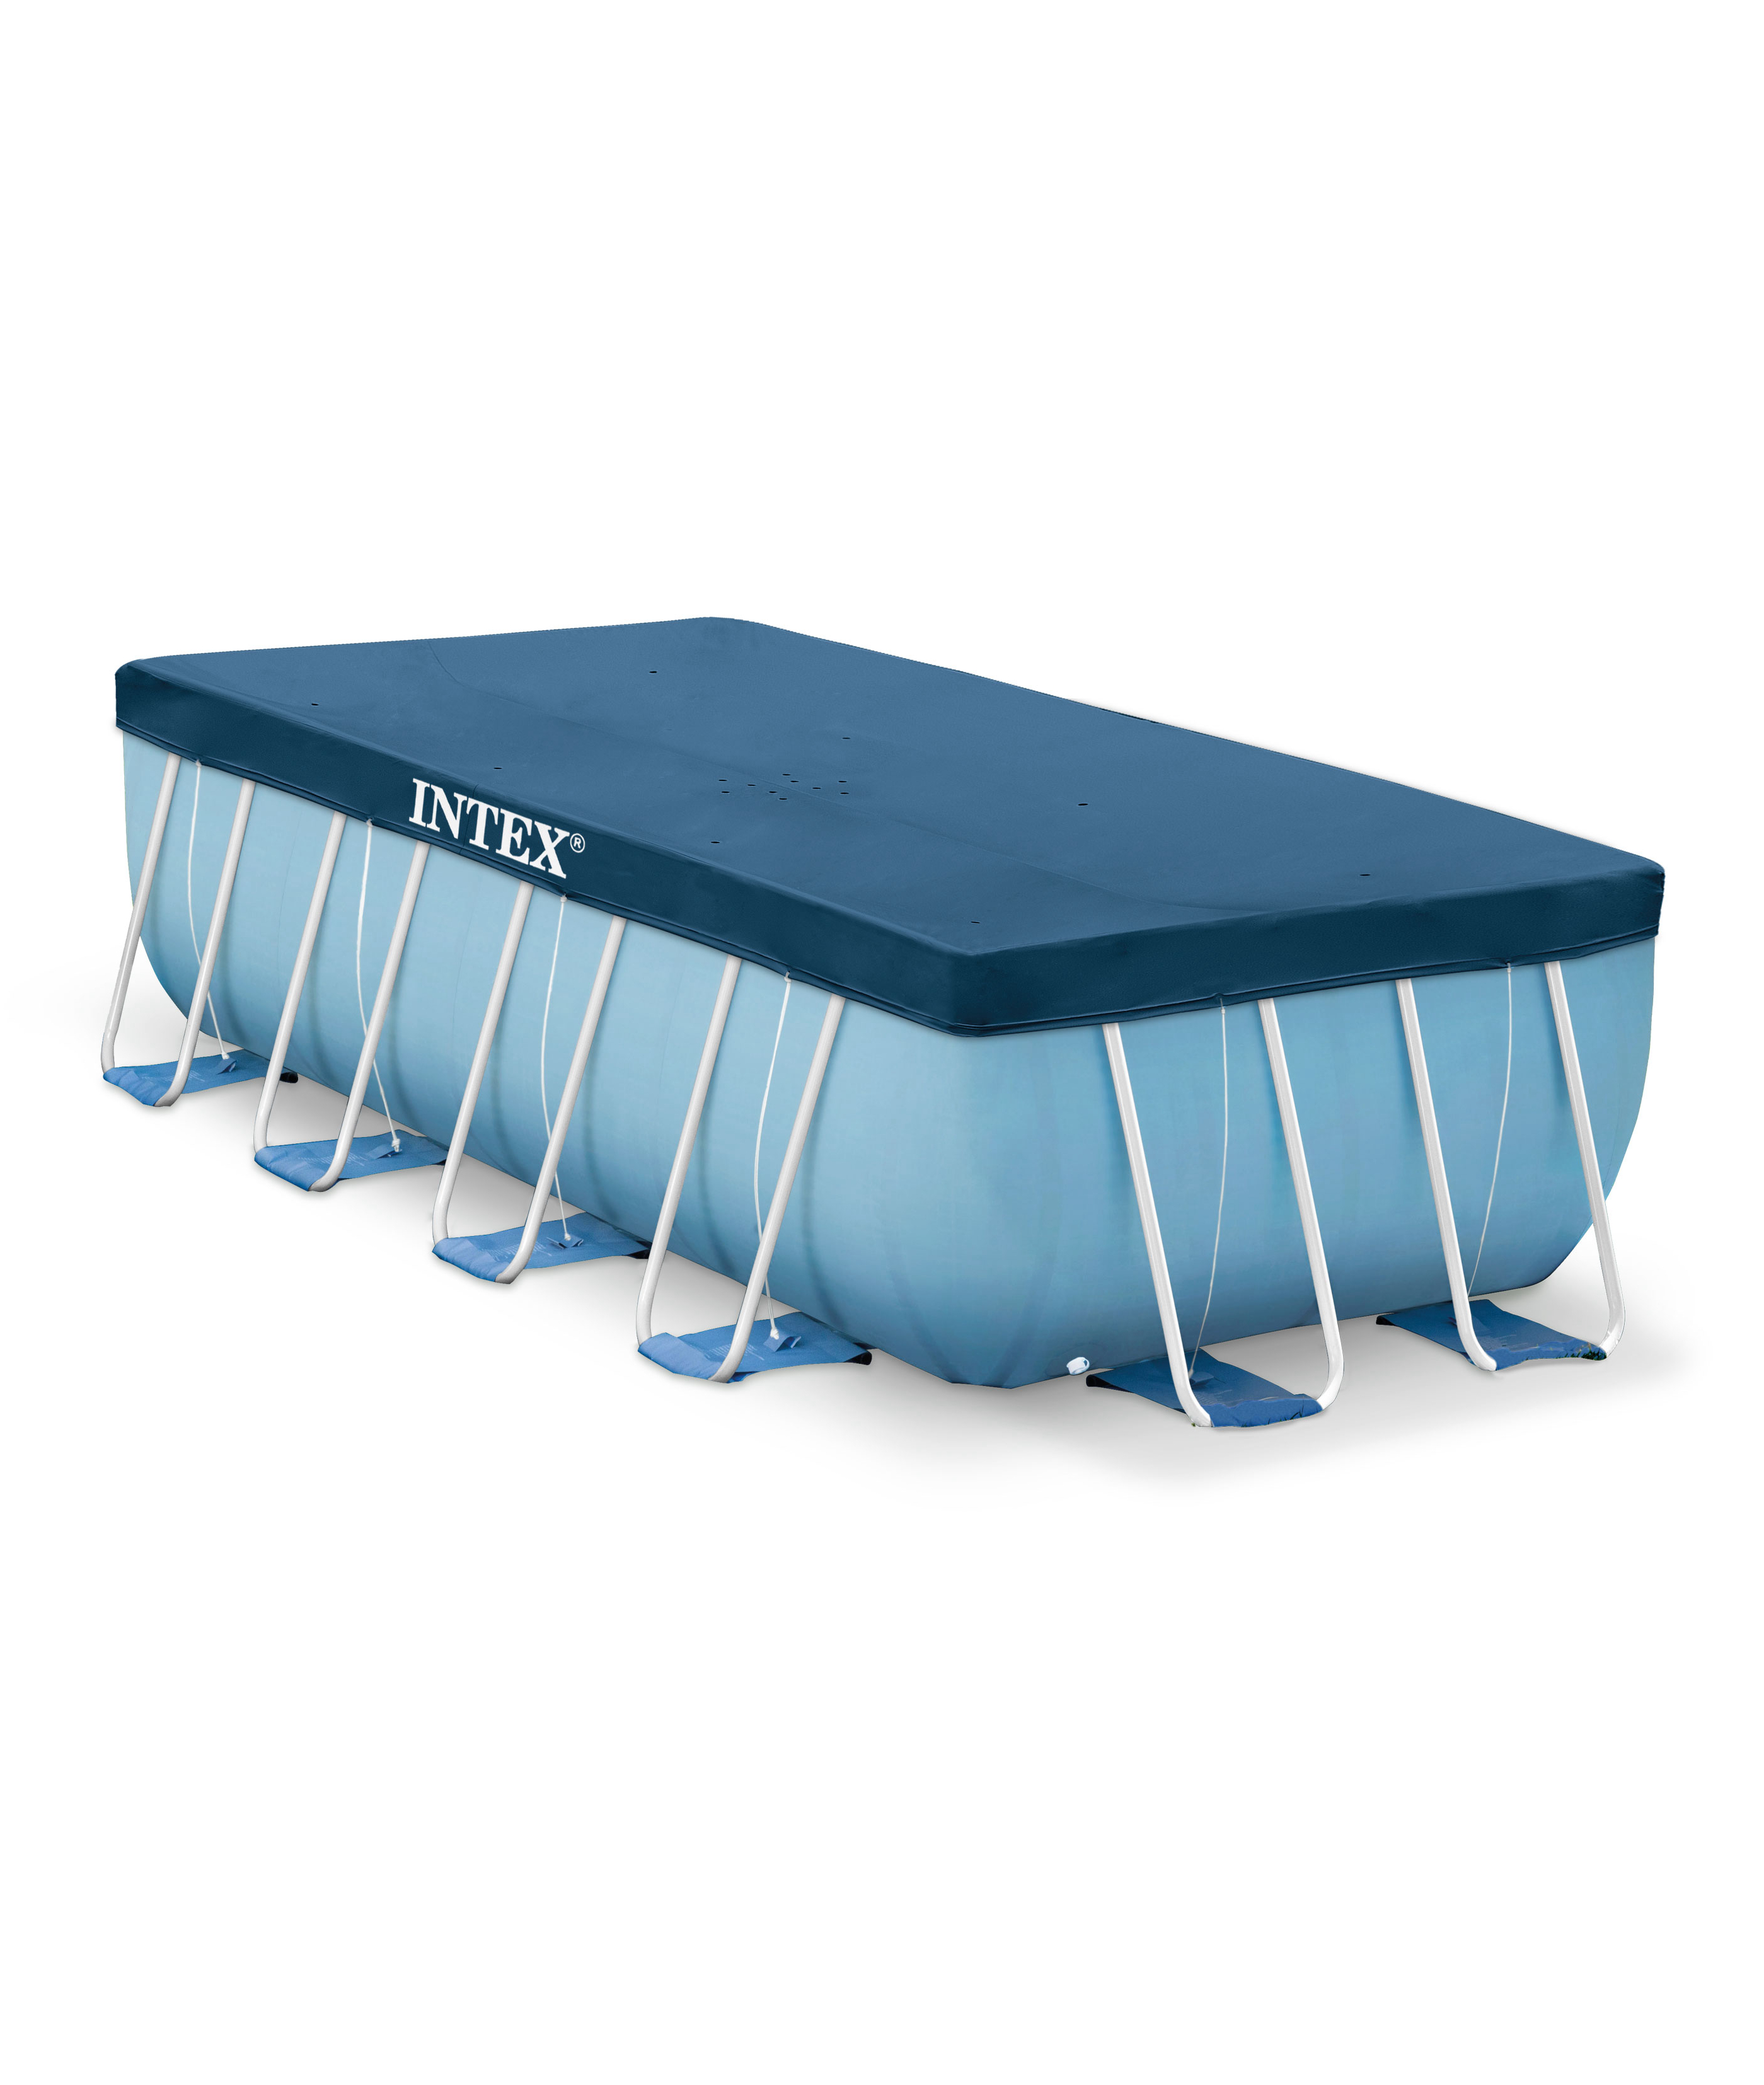 Awning For Frame Pools, Accessory For Swimming Pool, Bedspread On Pool, Protection, 400x200 Cm, Intex, Item No. 28037